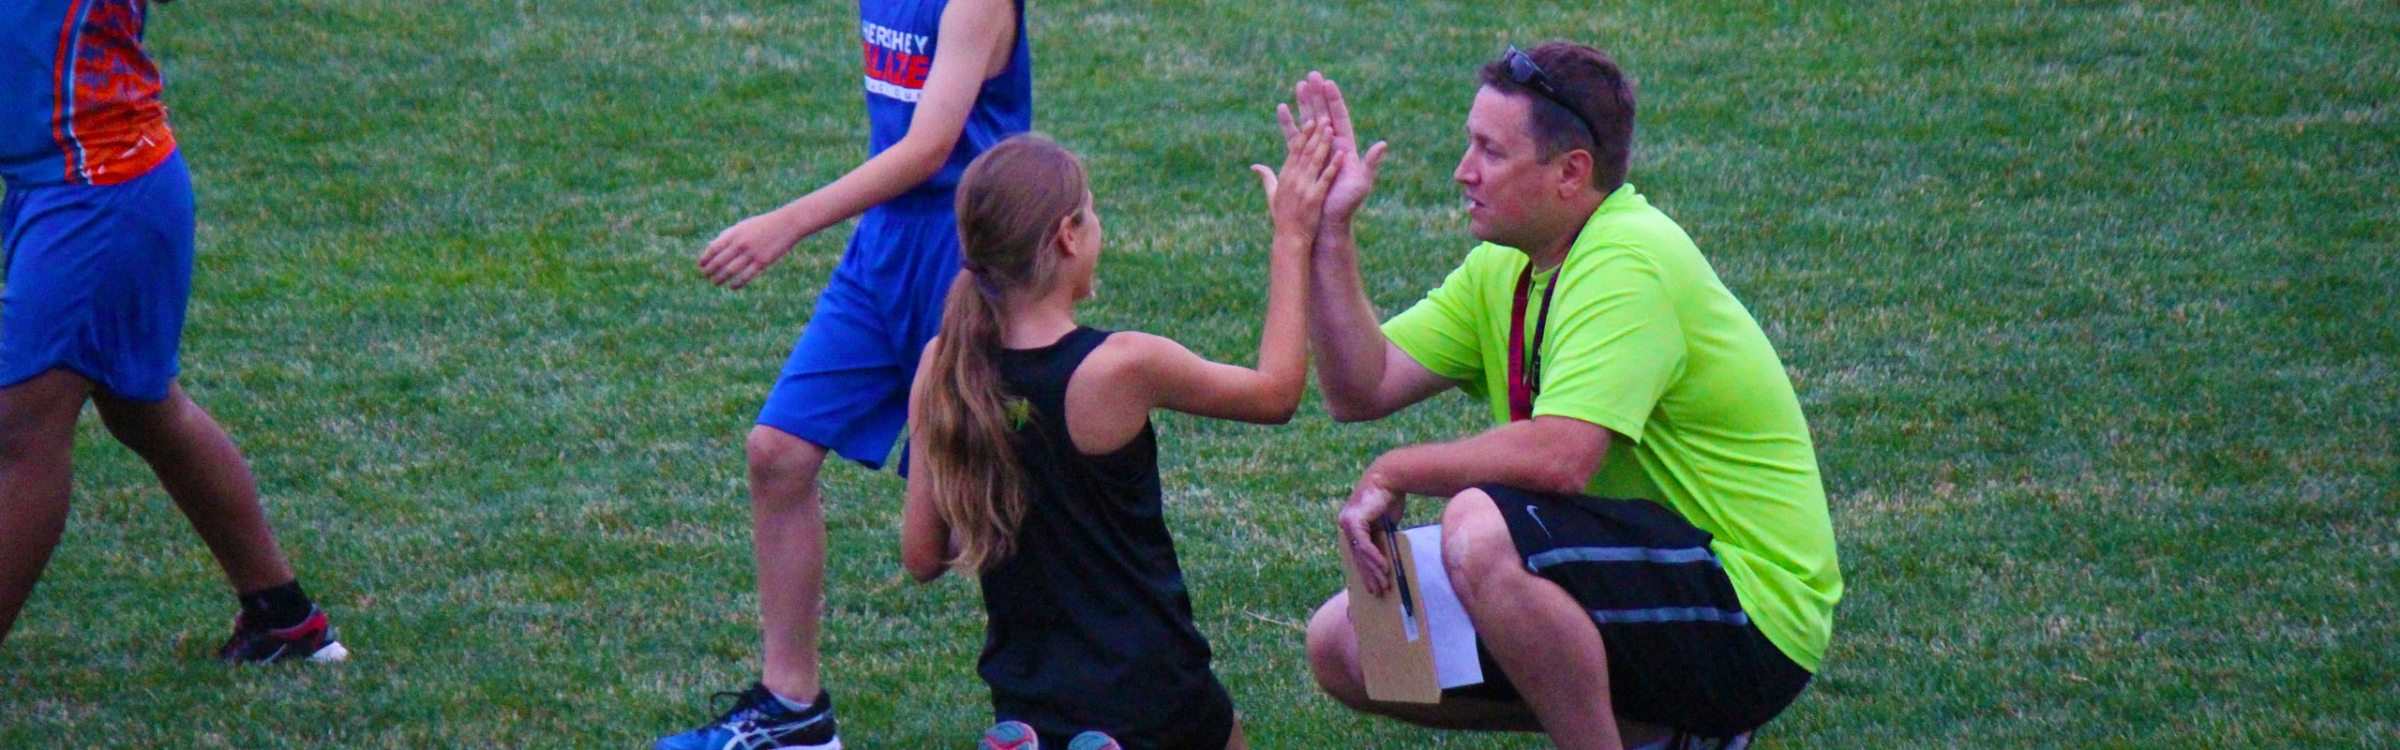 Coach Shawn high five